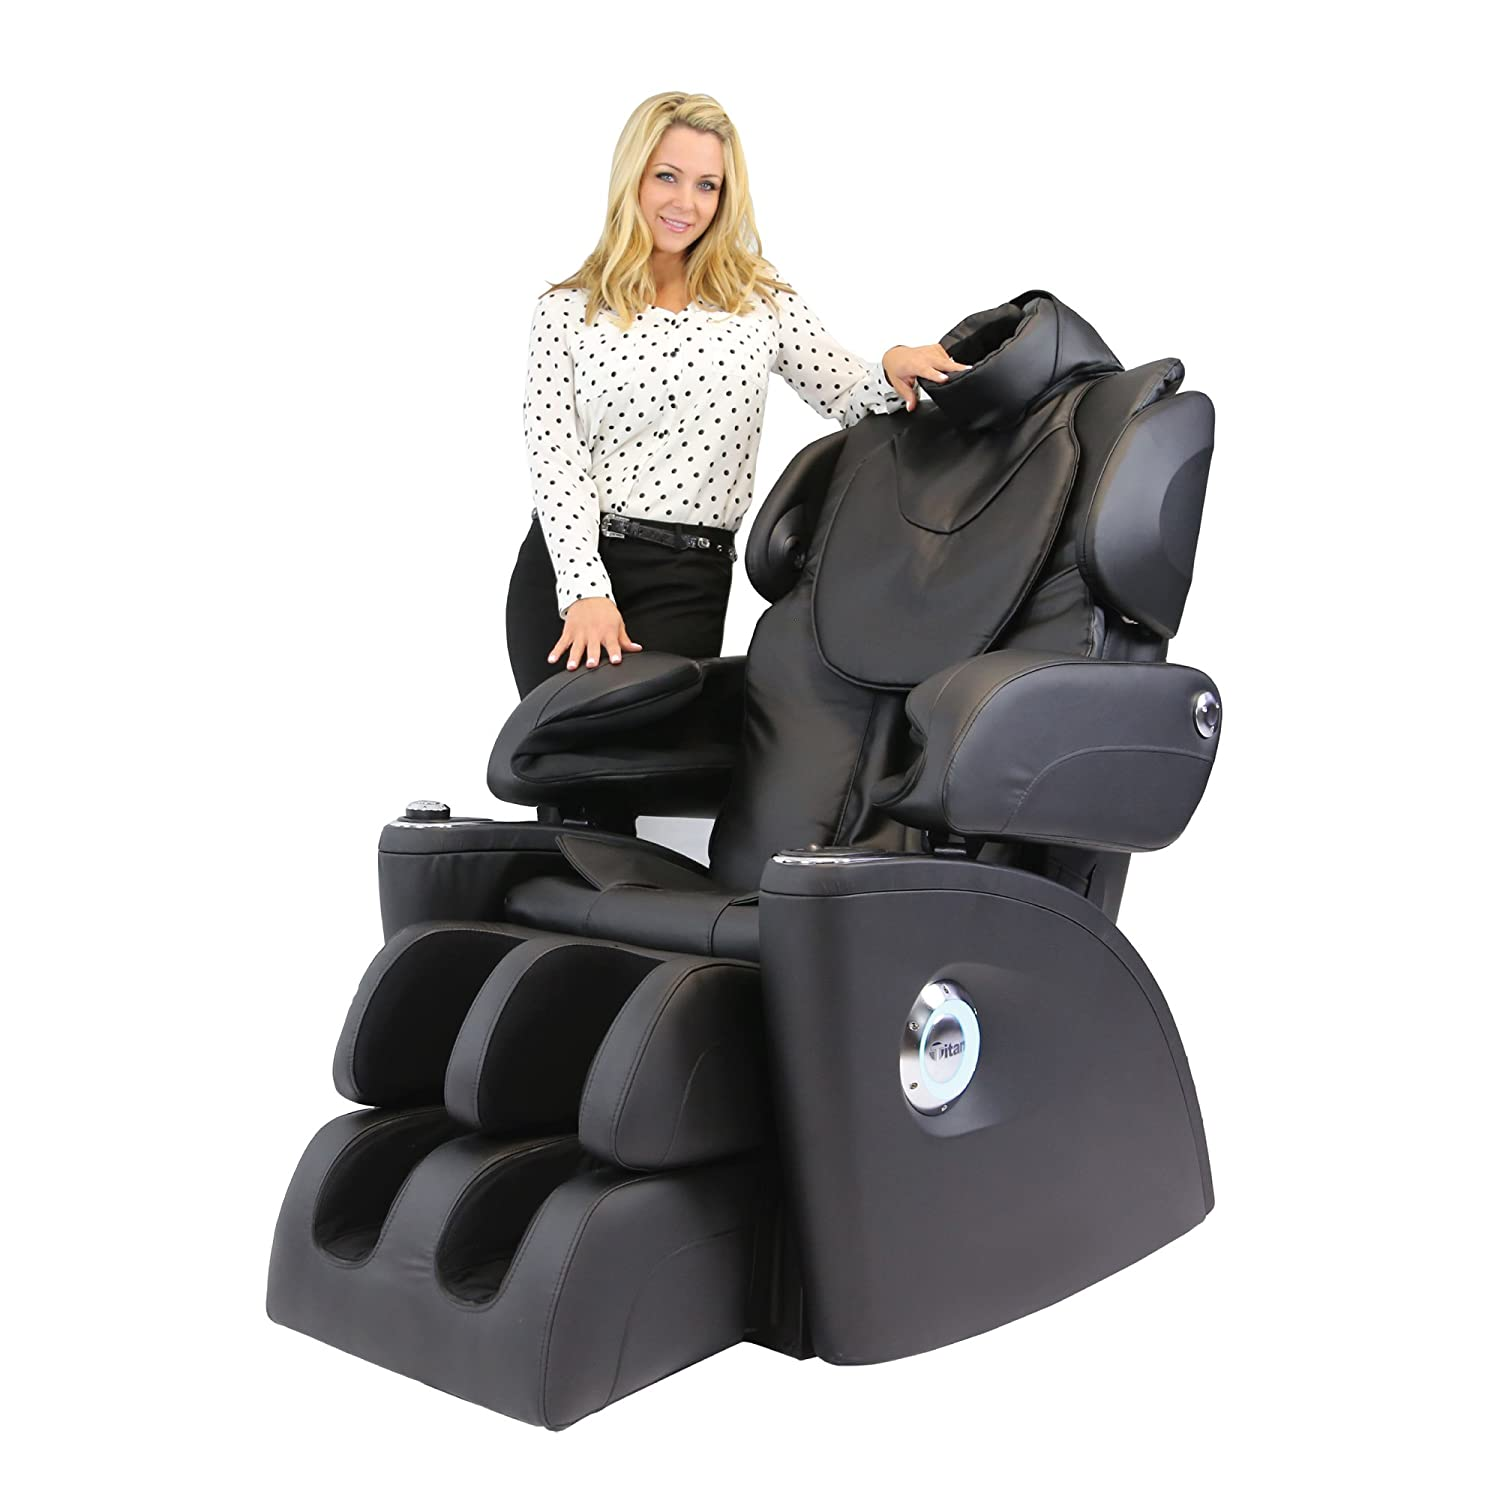 Amazon Titan TI 7800 Full Body Massage Chair with Head